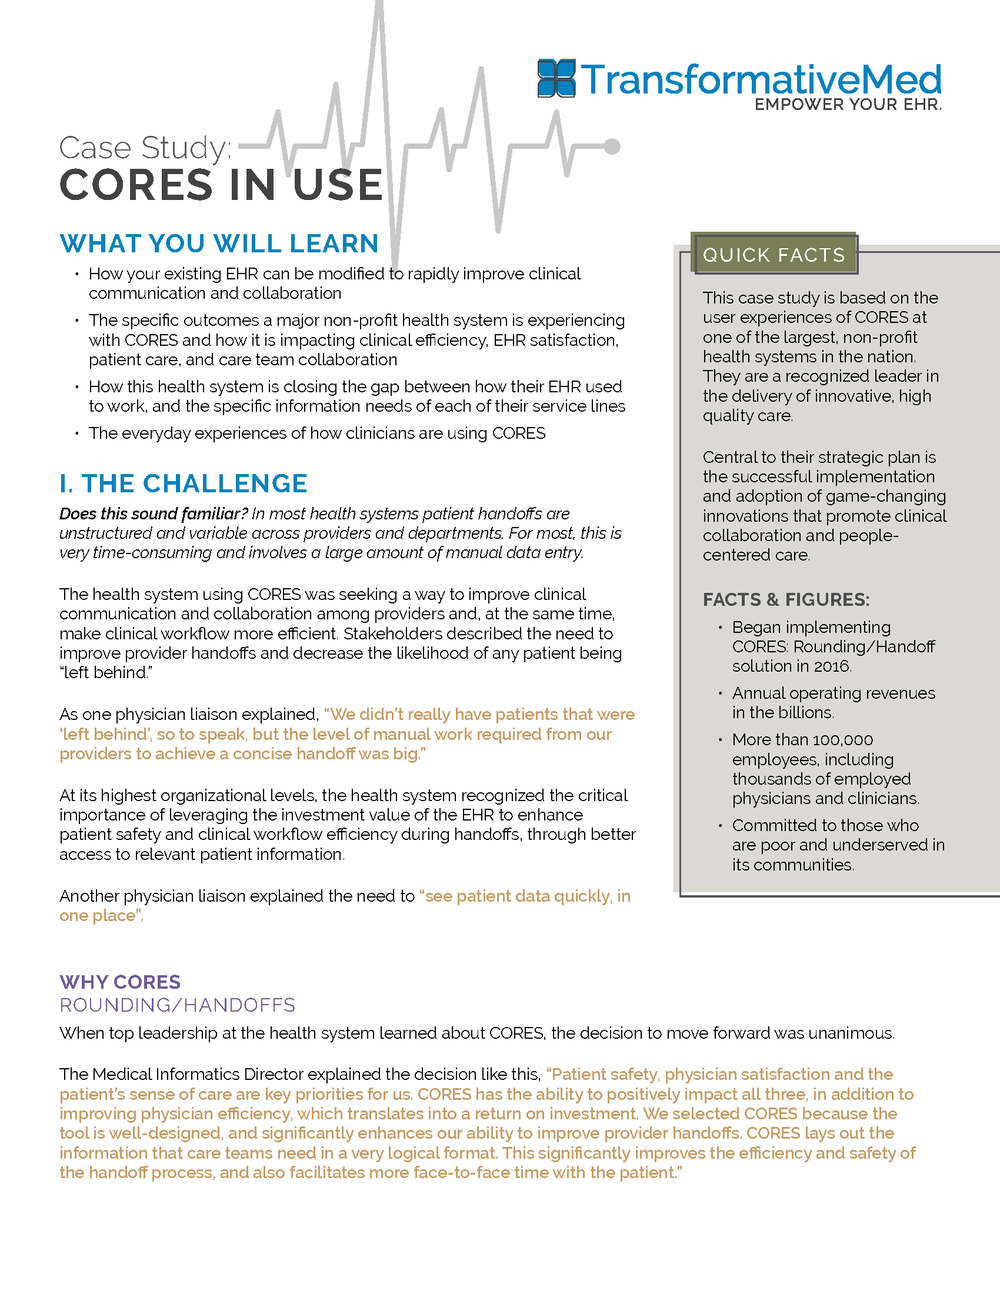 TransformativeMed-Case-Study-digital-simple_Page_01.png